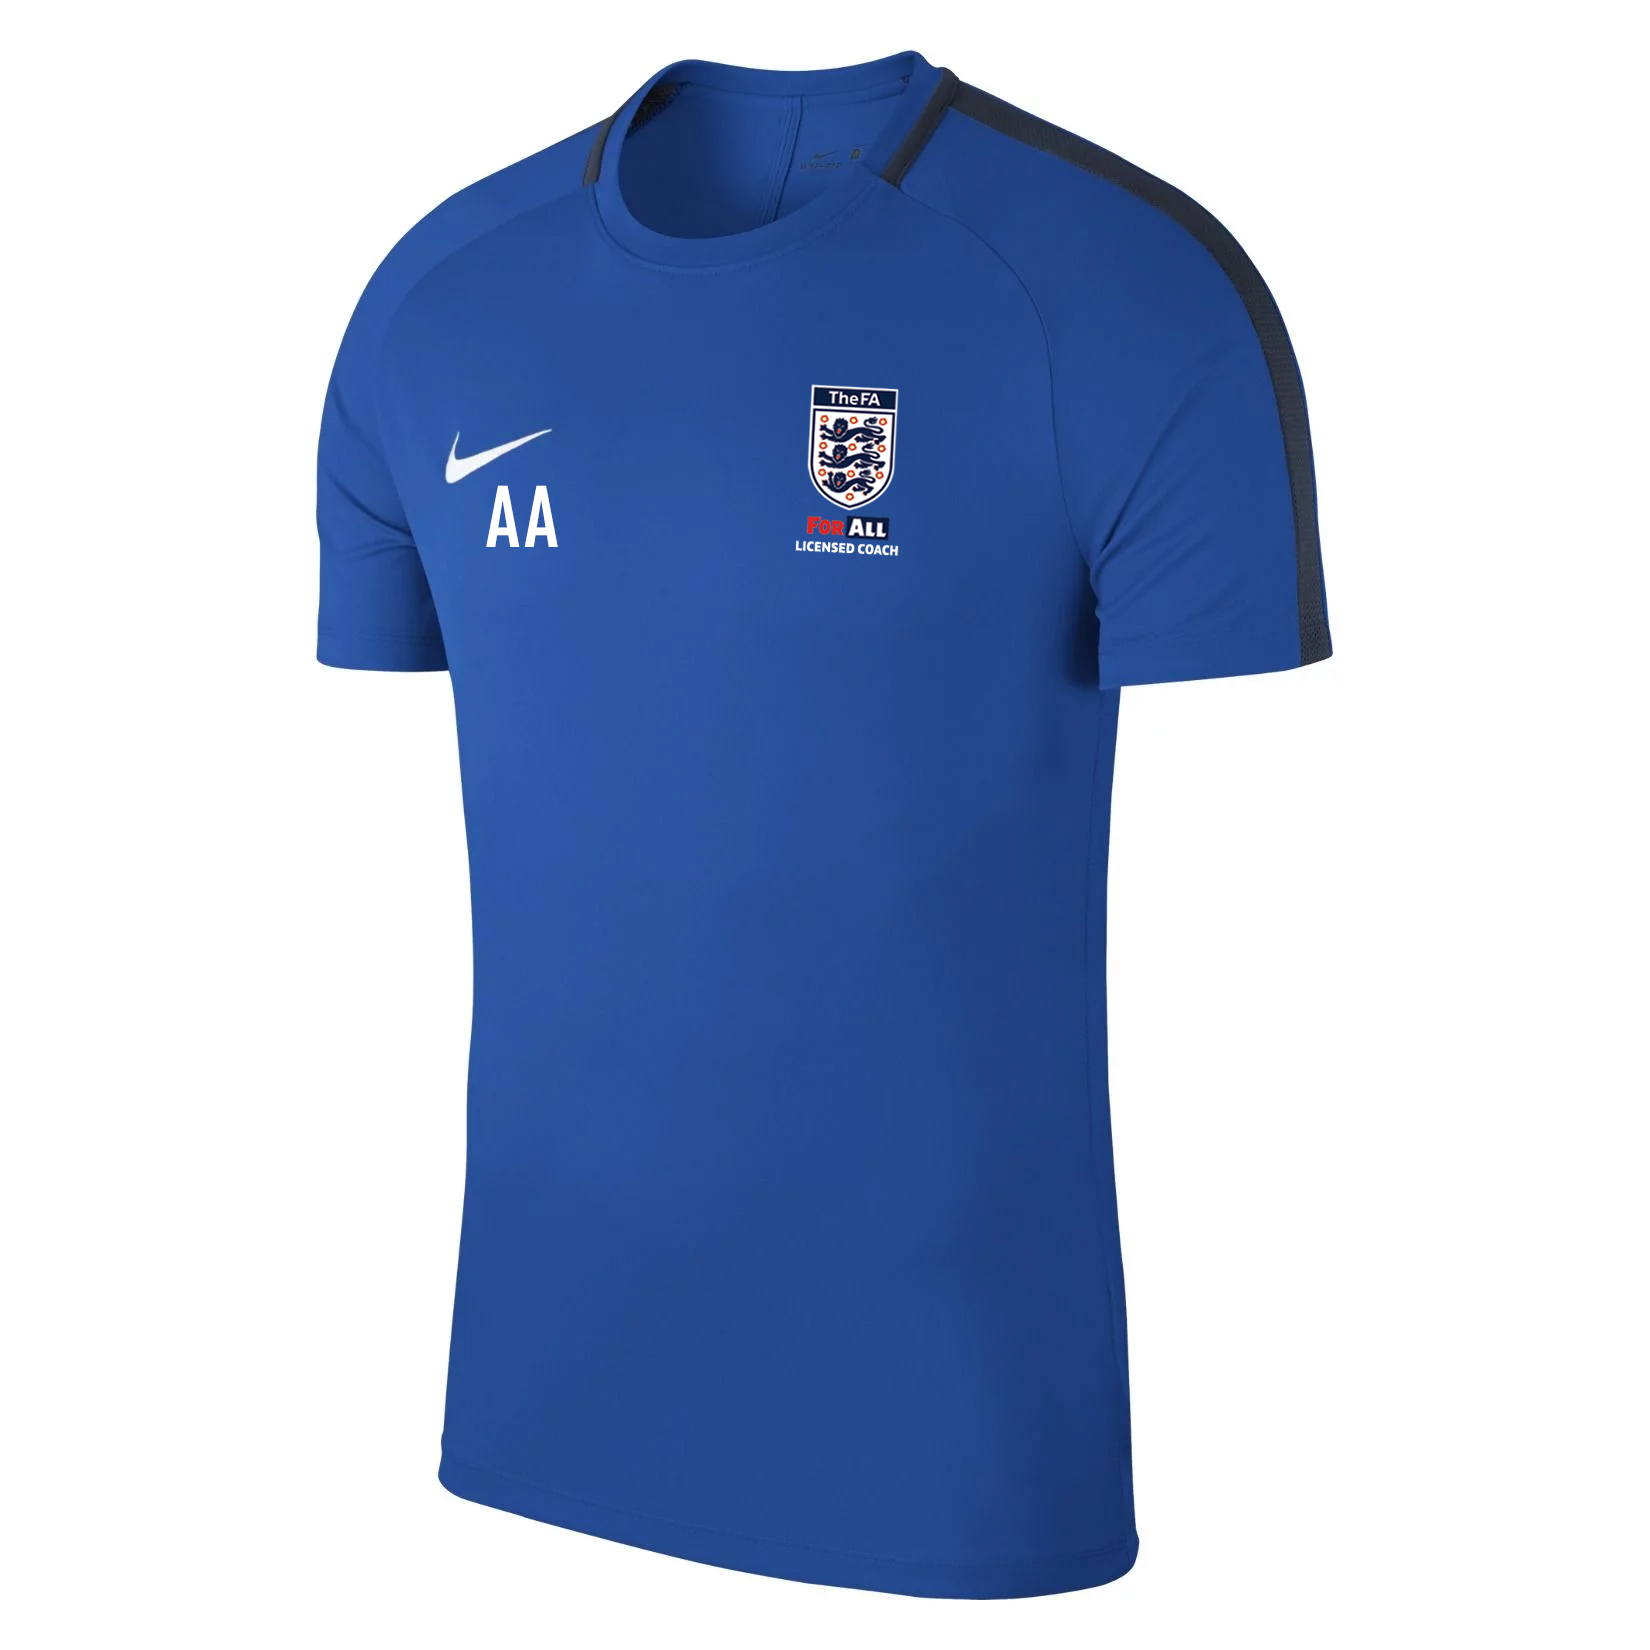 Nike Academy 18 Short Sleeve Top (m) Royal Blue-Obsidian-White